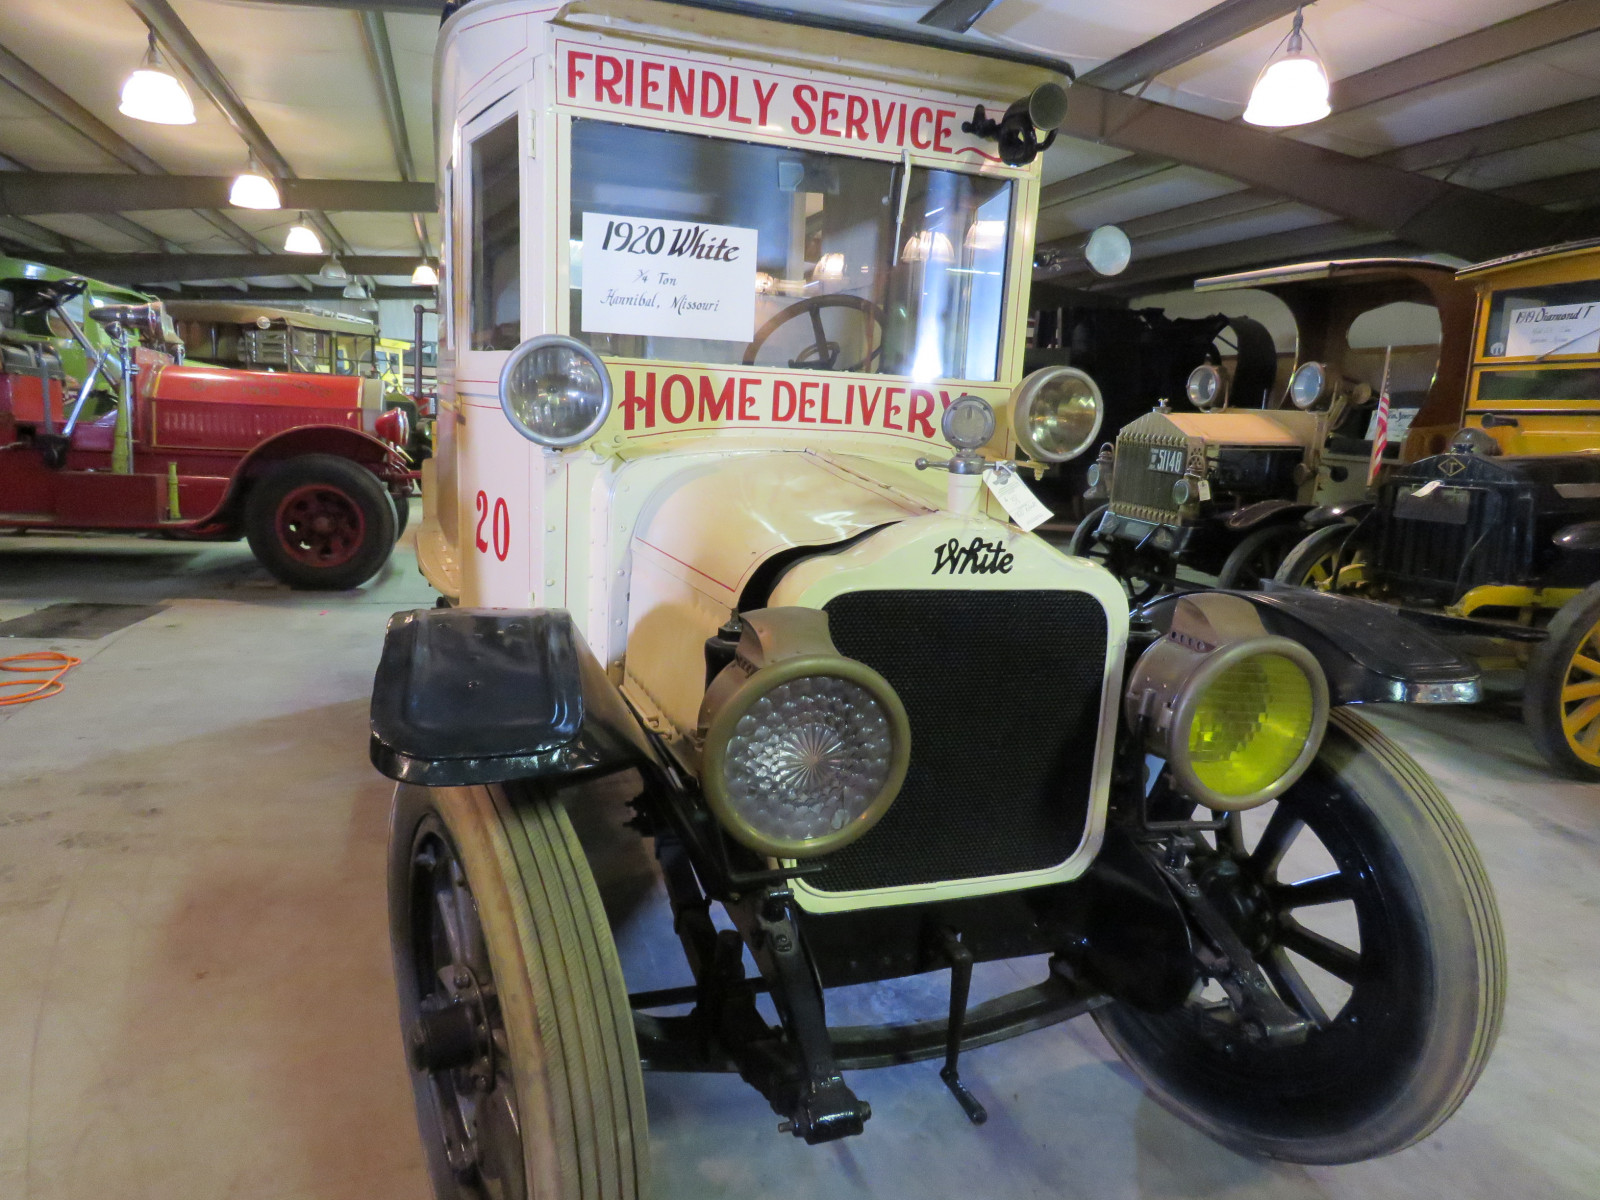 RARE 1920 White Panel Delivery Truck - Image 2